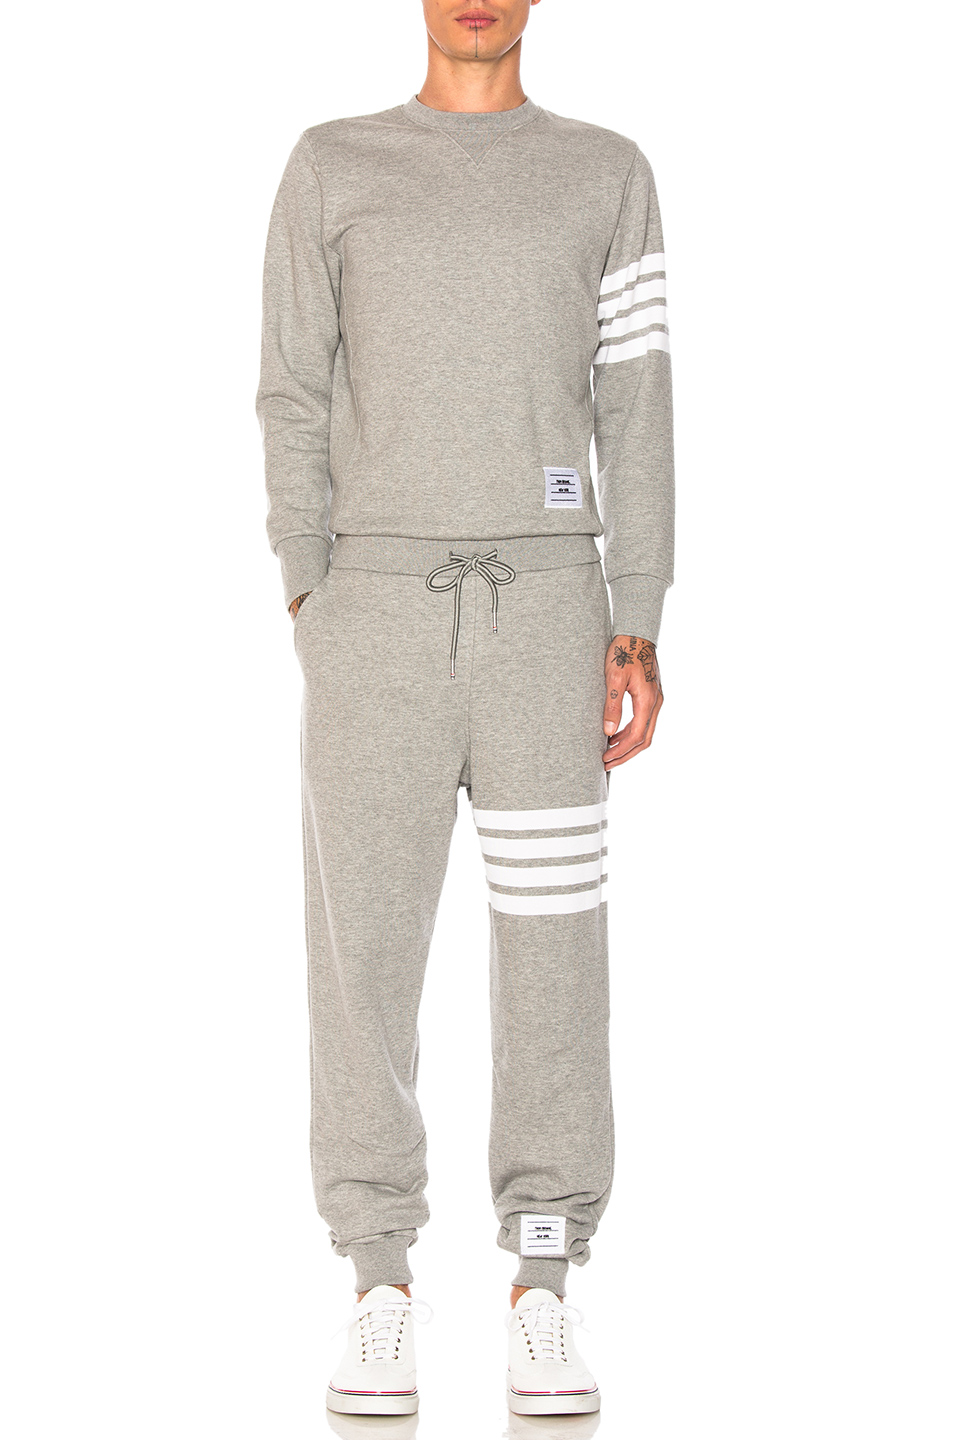 Thom Browne Trompe L'Oeil Sweatsuit in Gray